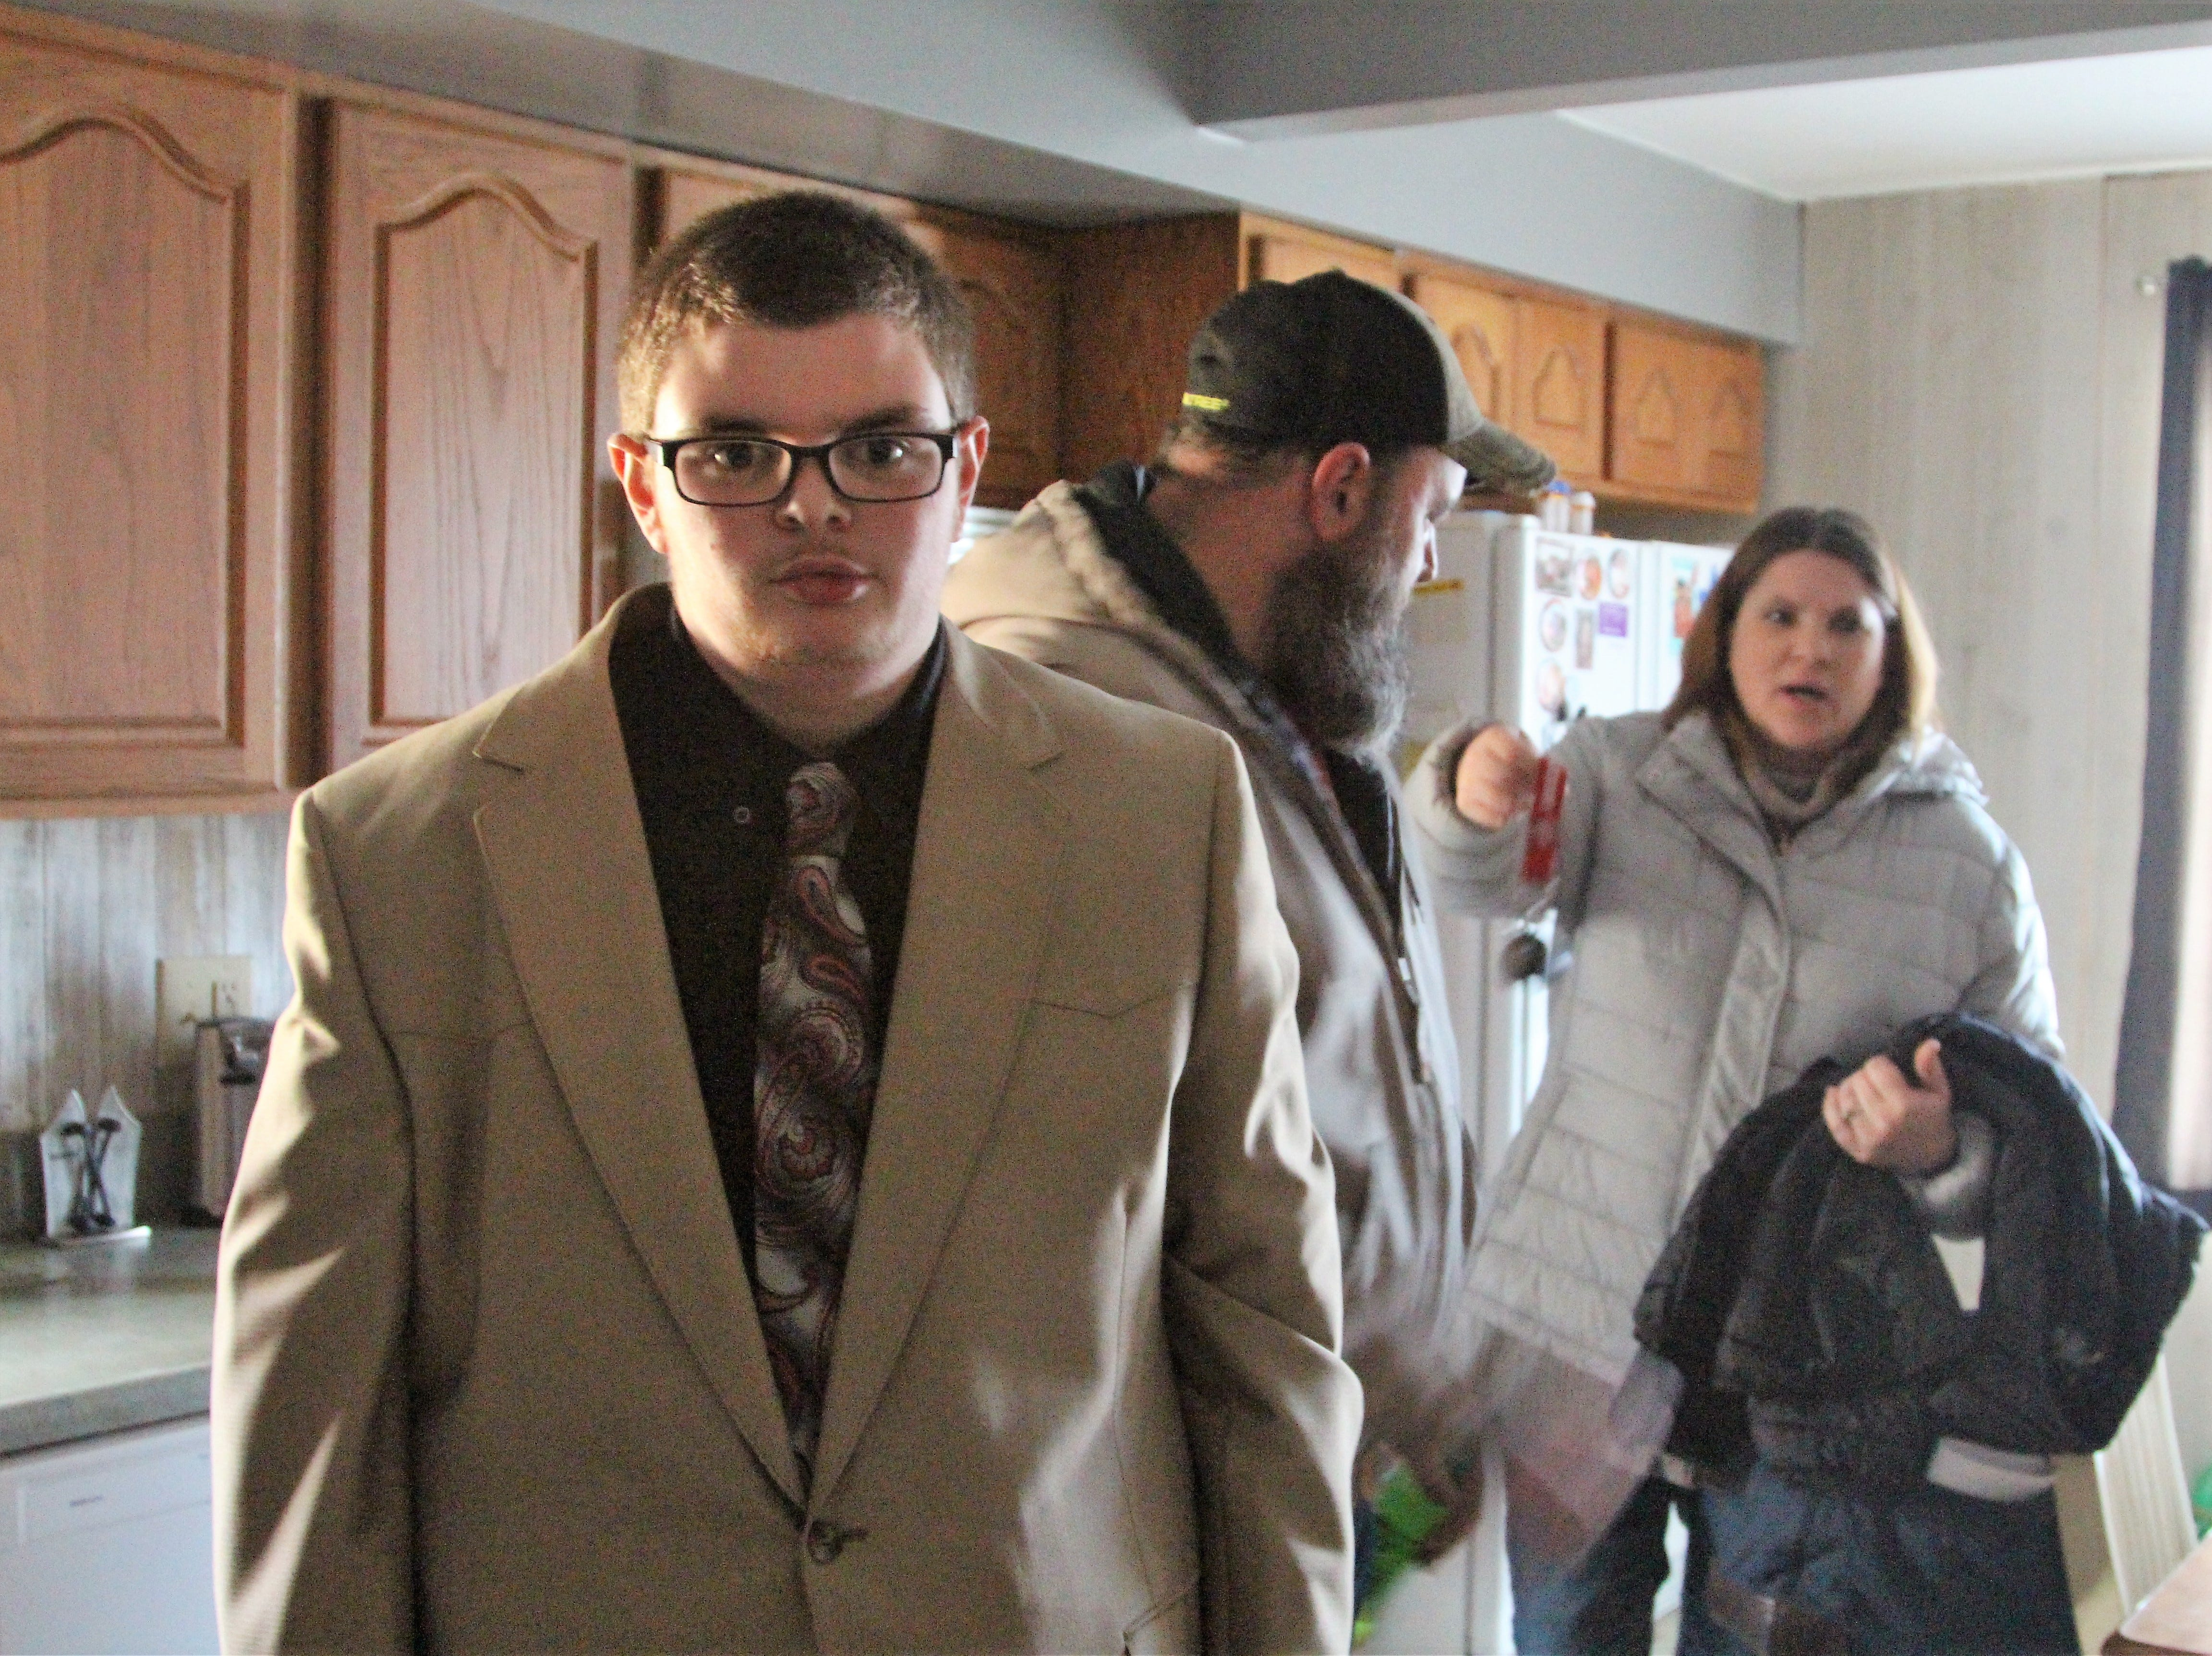 Presden deal wears the suit jacket his Grandfather bought for him as his family prepares to make a trip to downtown Marion. They attended the Night to Shine, a dance for those with special needs.